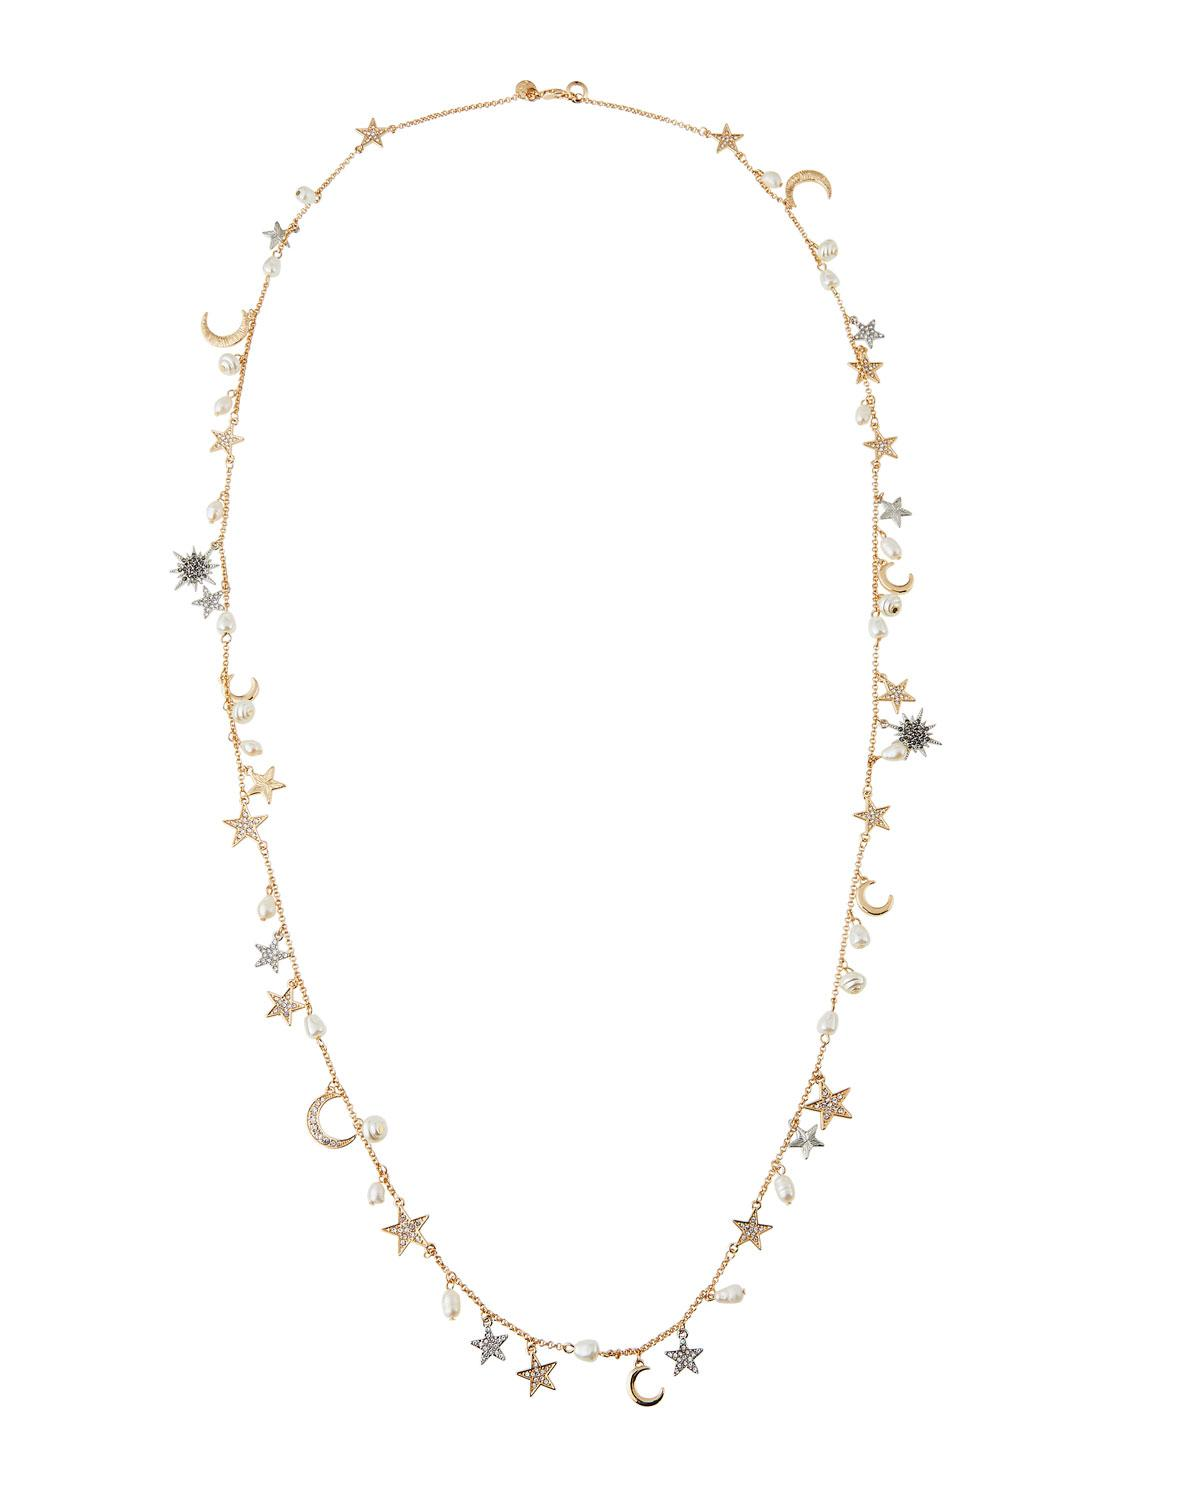 Lydell Nyc Single-Strand Cubic Zirconia Celestial Necklace RIWC8iW